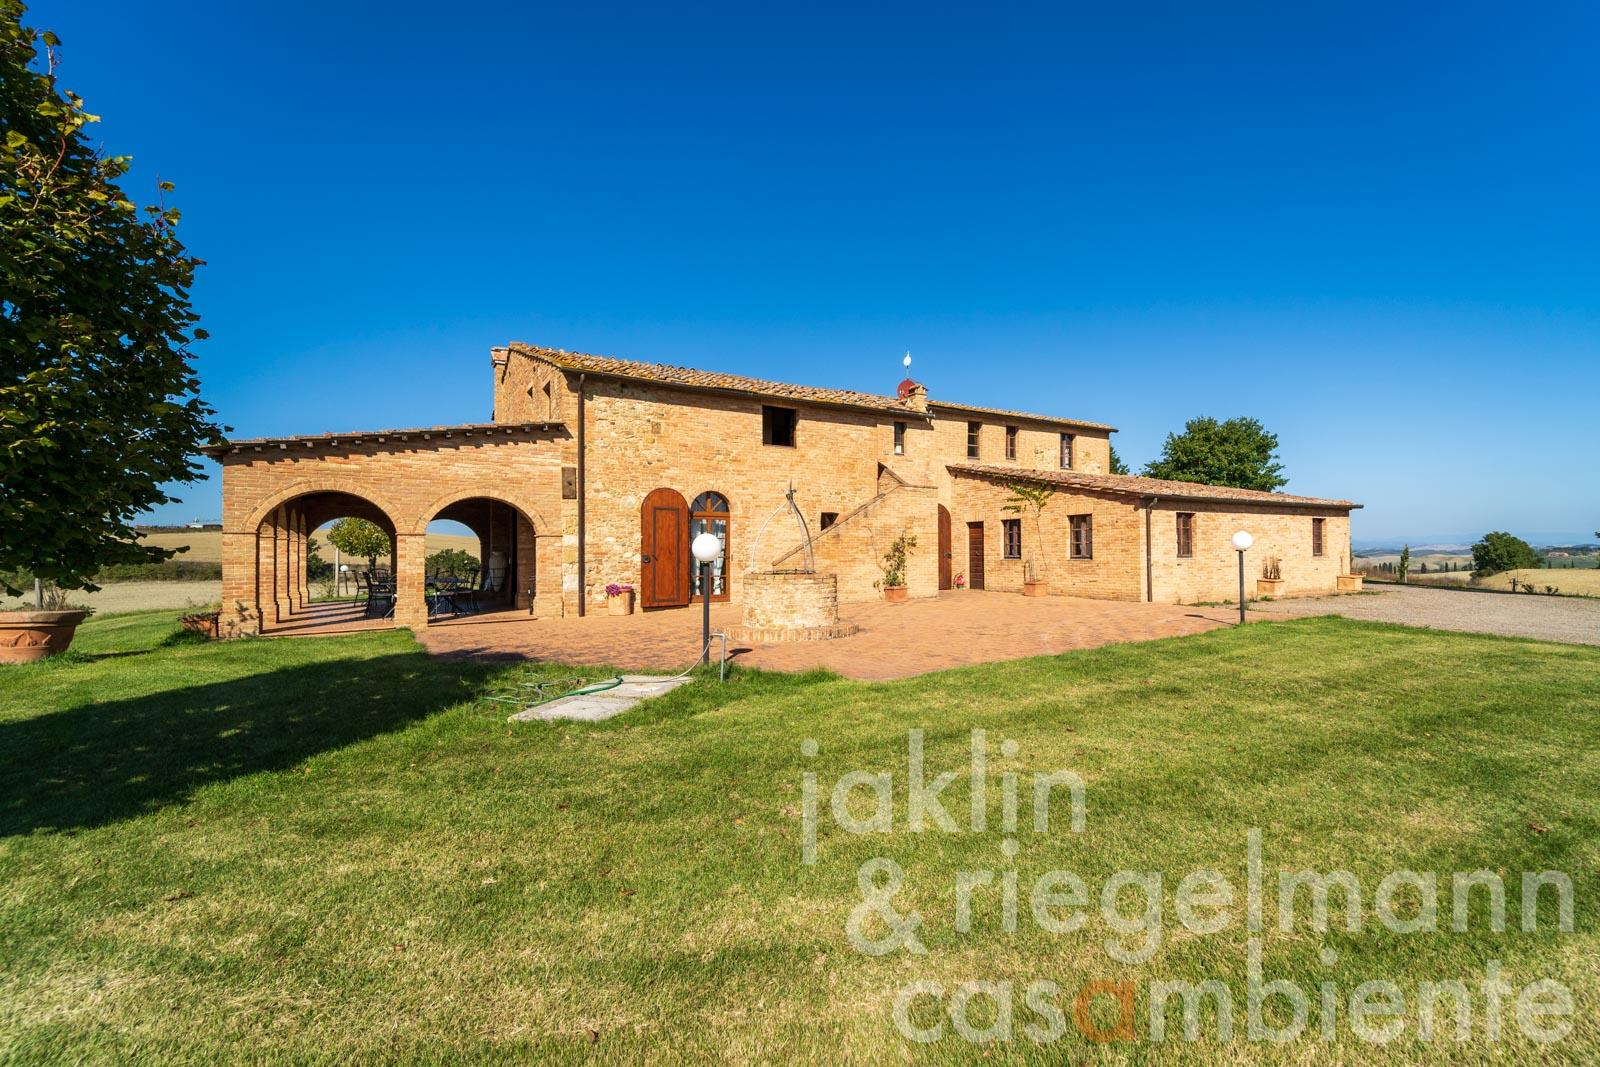 Country house between Siena and Montalcino with pool and views to the south